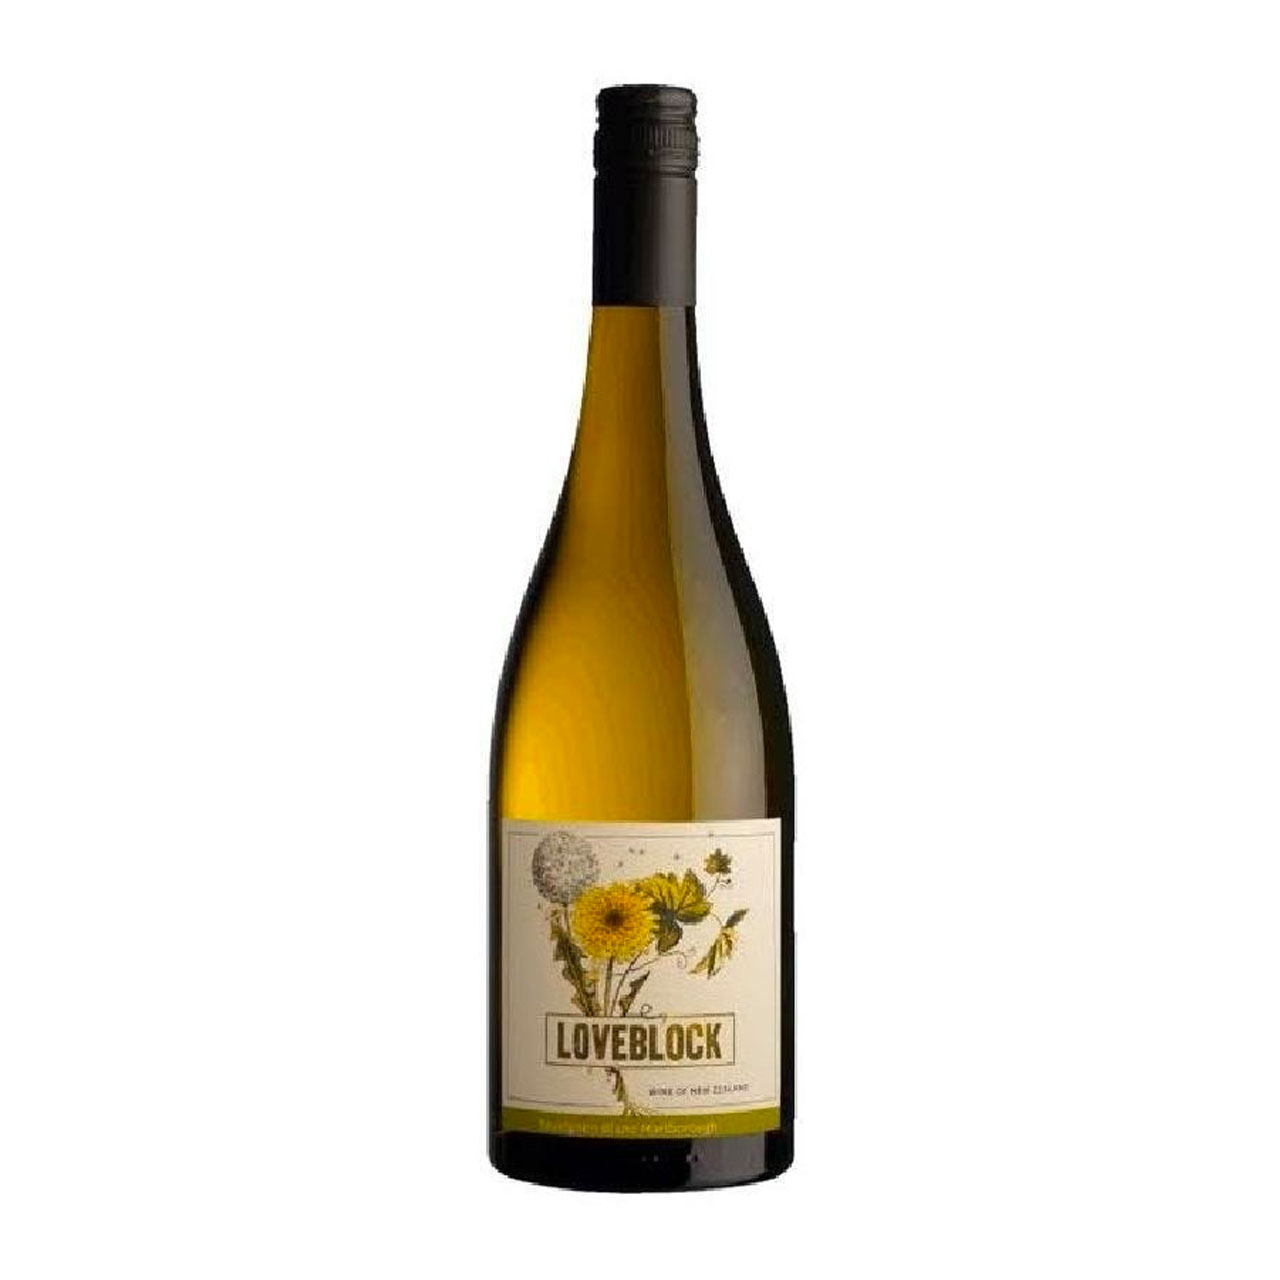 2019 Marlborough, Sauvignon Blanc, Loveblock